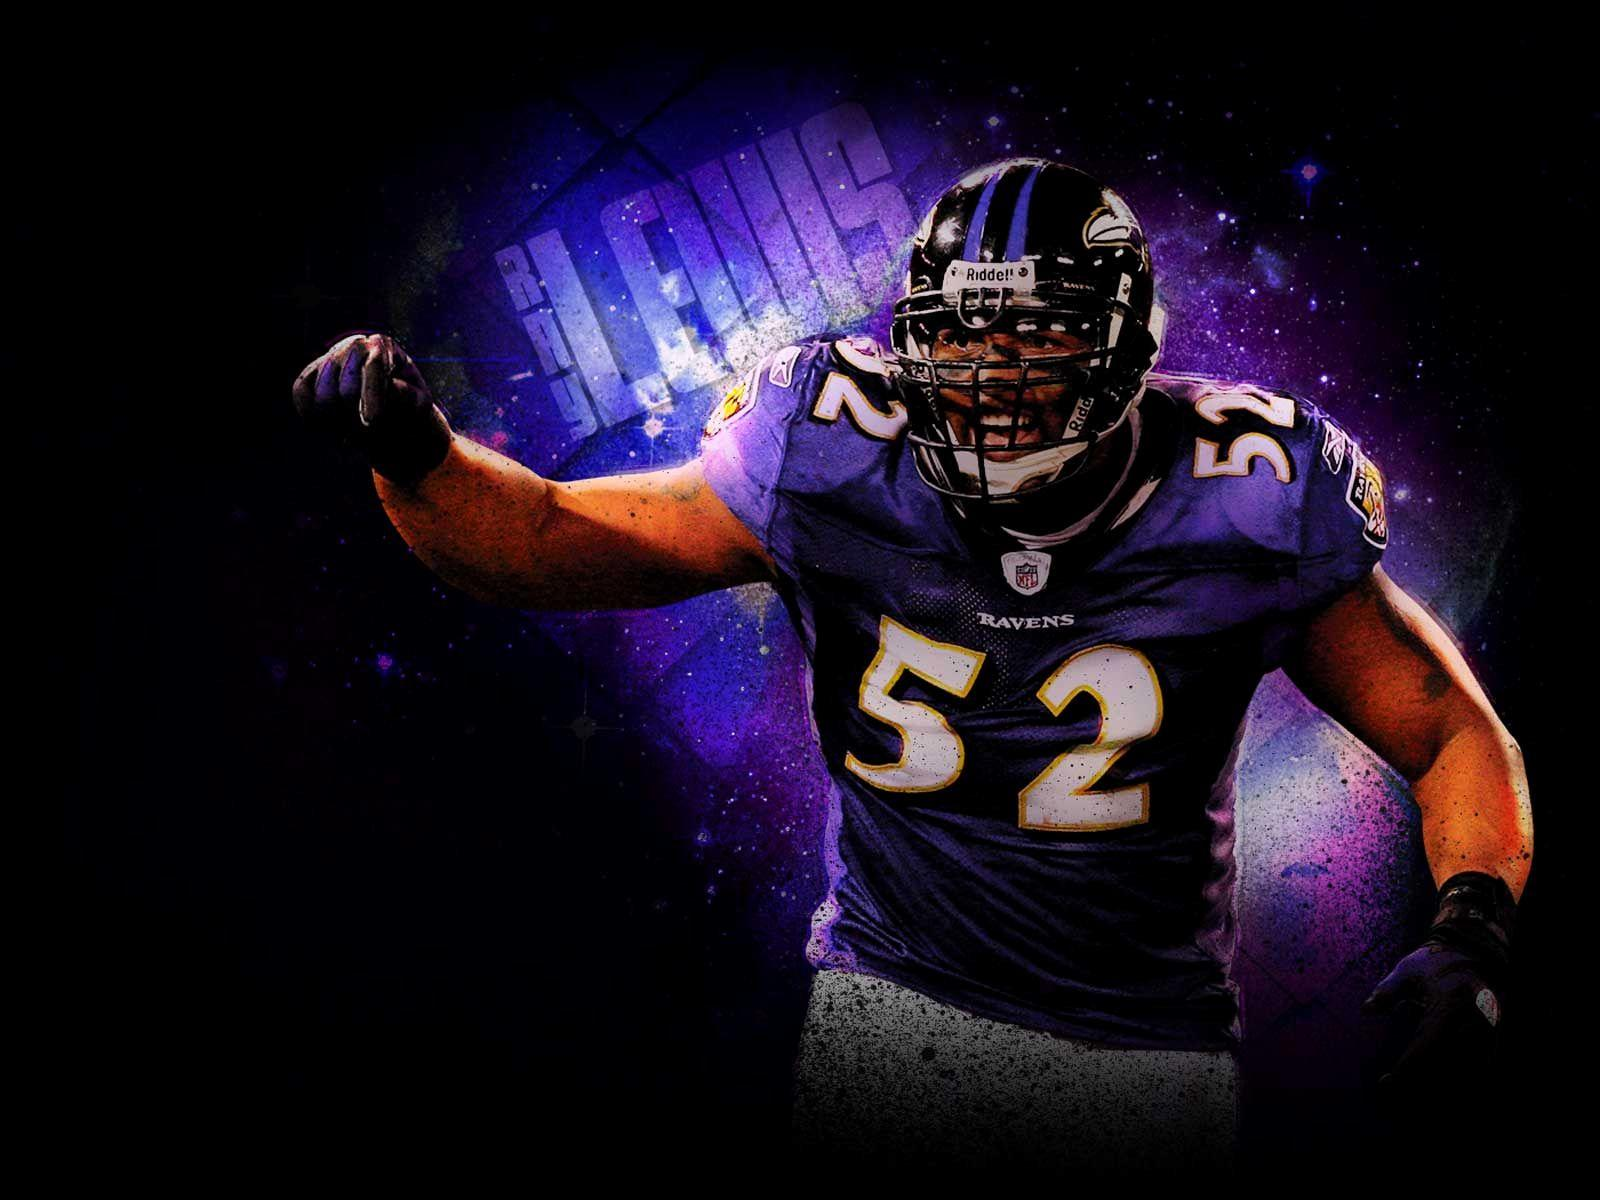 Cool Nfl Players Wallpapers: Baltimore Ravens 2018 Wallpapers